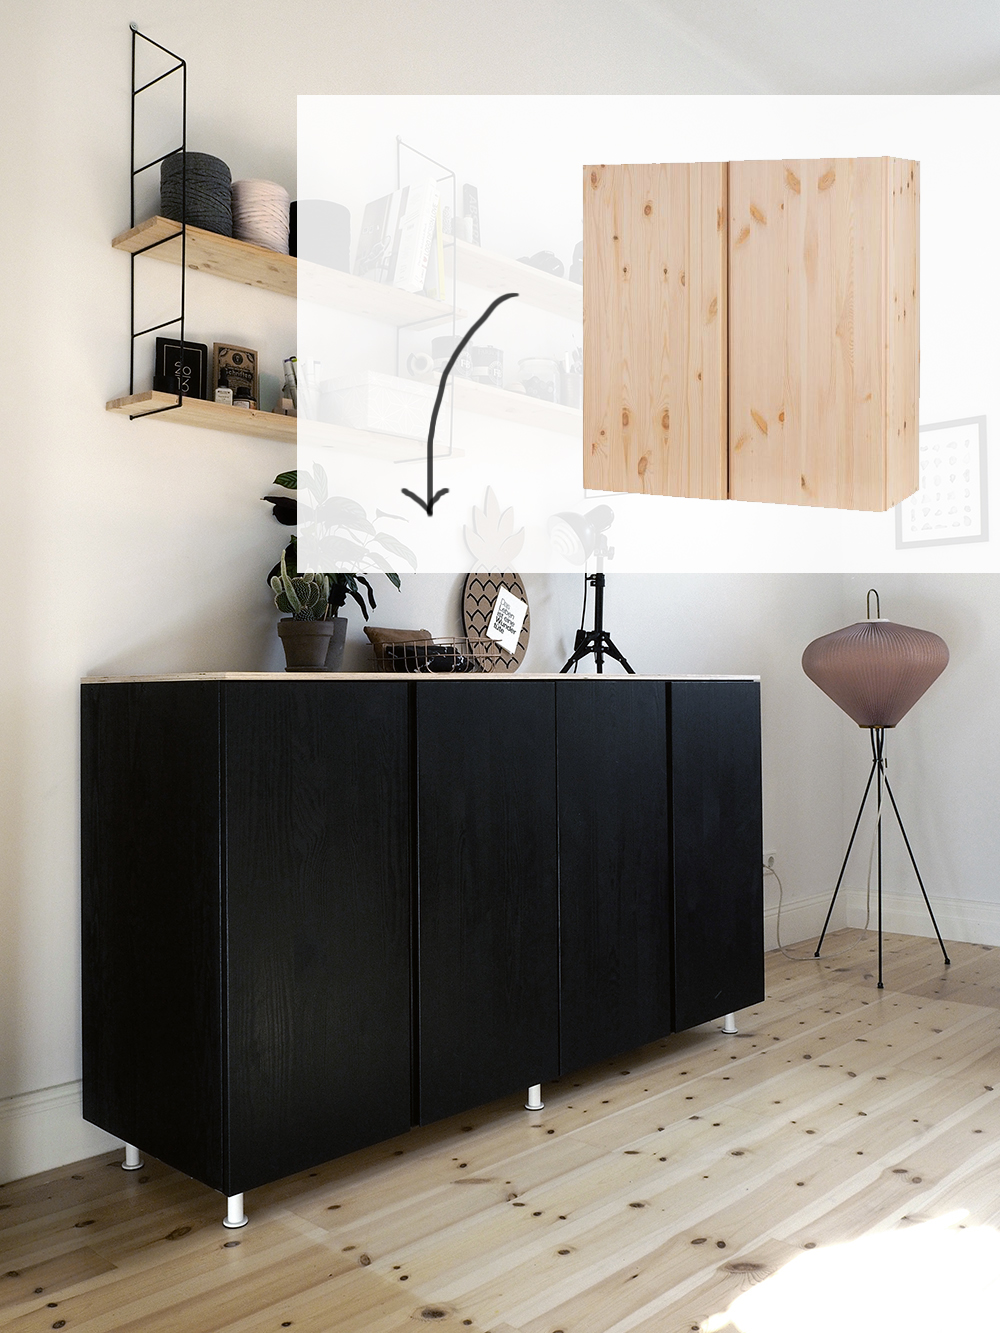 id til skabe med l ger til opbevaring af ting og. Black Bedroom Furniture Sets. Home Design Ideas